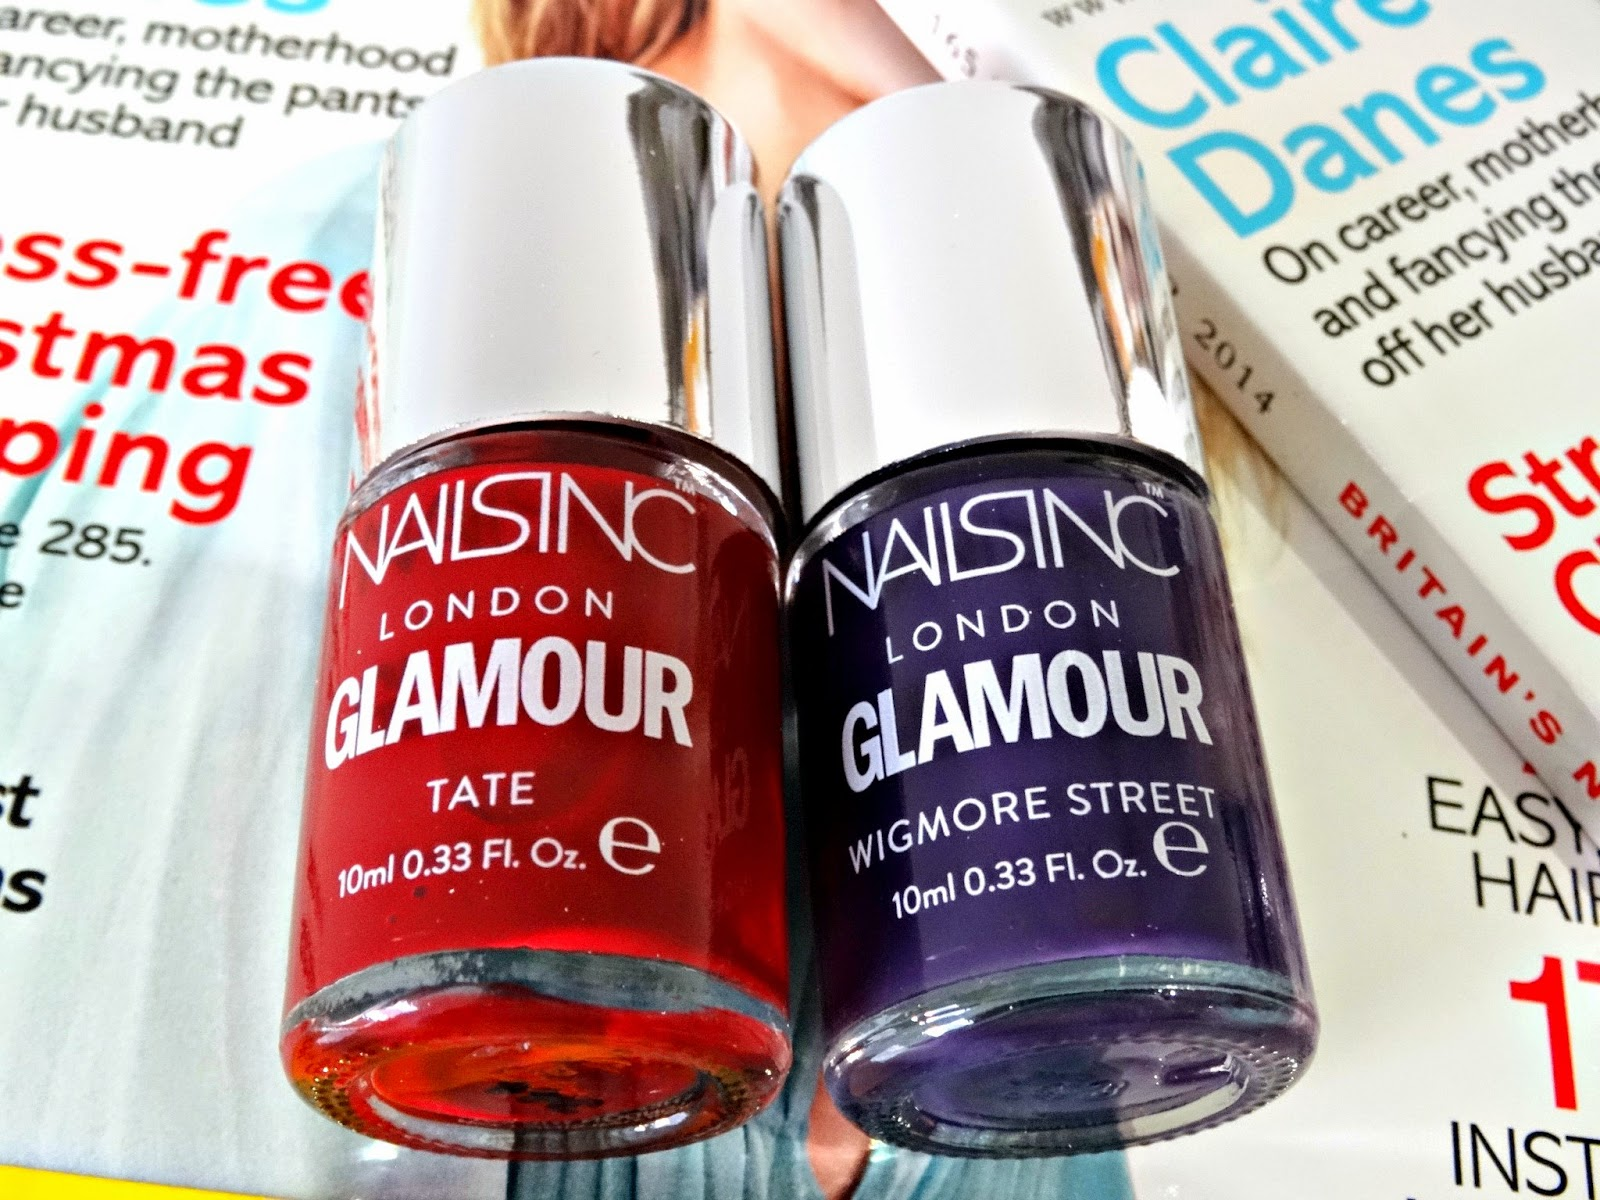 Glamour December 2014 issue review Nails Inc nail polish